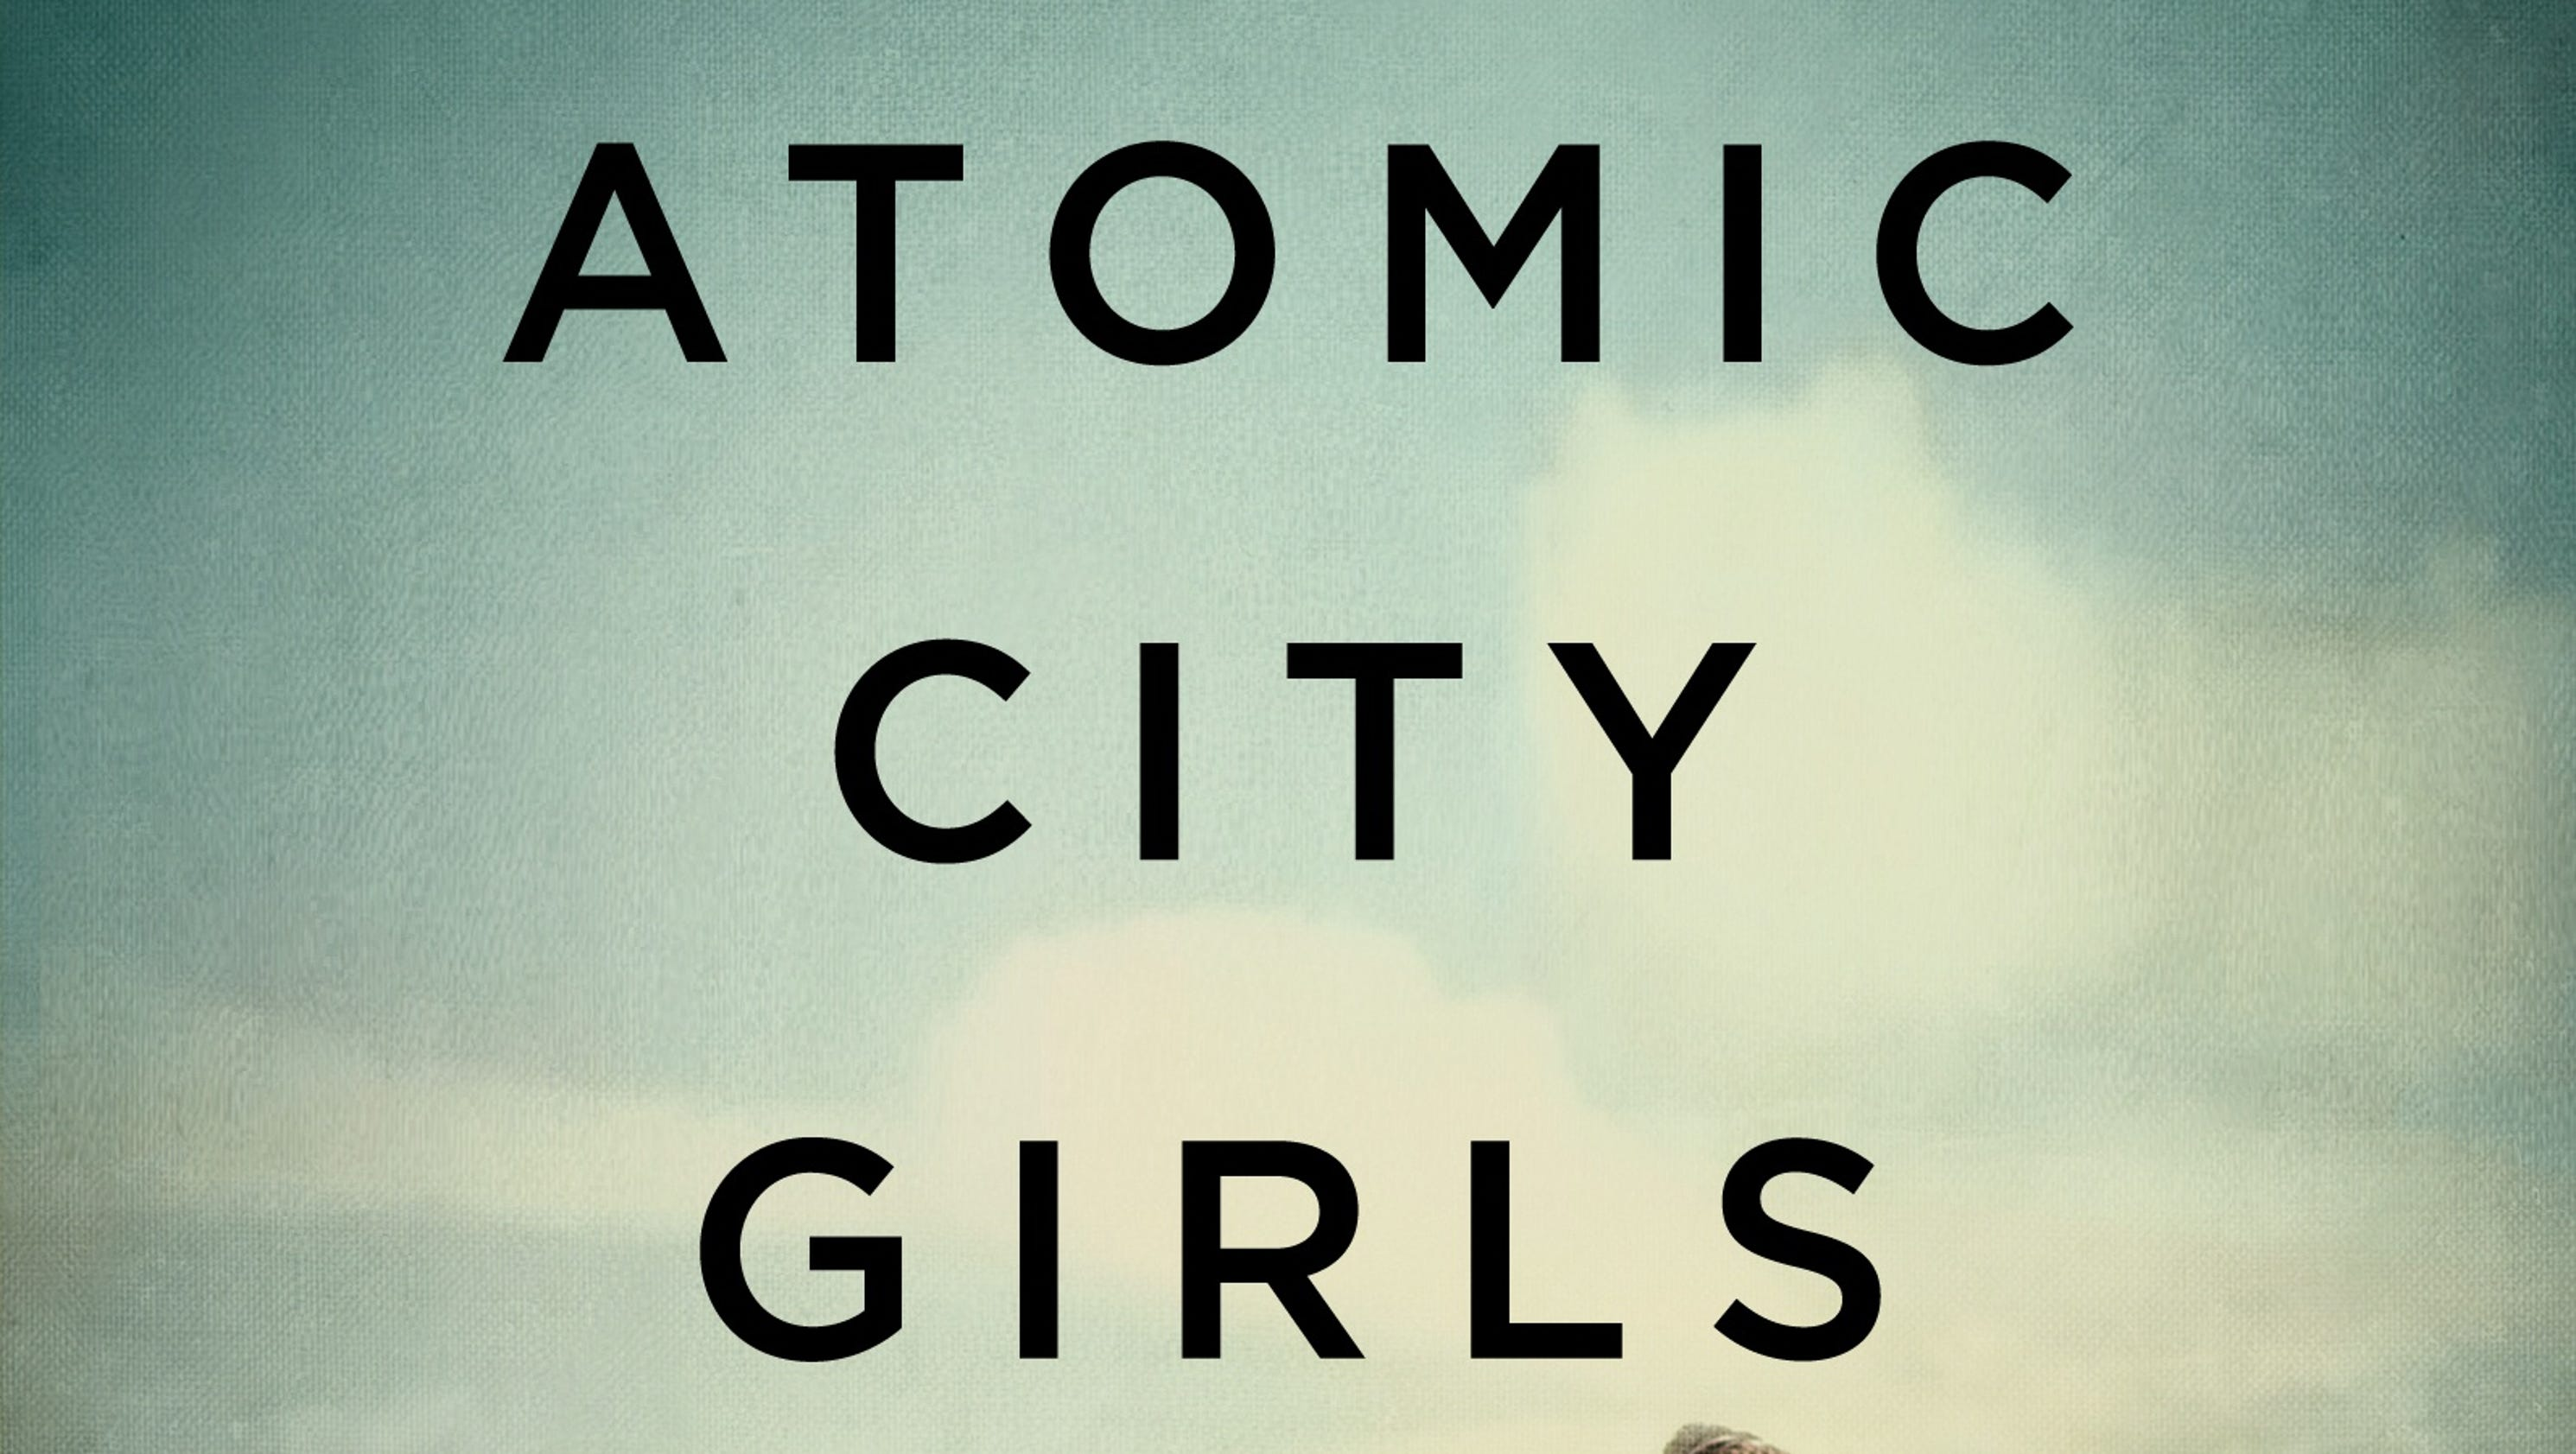 atomic city single asian girls Atomic city is the third single from former frankie goes to hollywood singer holly johnson, from his 1989 debut album blast the track was produced by dan hartmana video was created for the track as well as a remix video titled enviro-mental 12 mix, directed by colin chilvers.